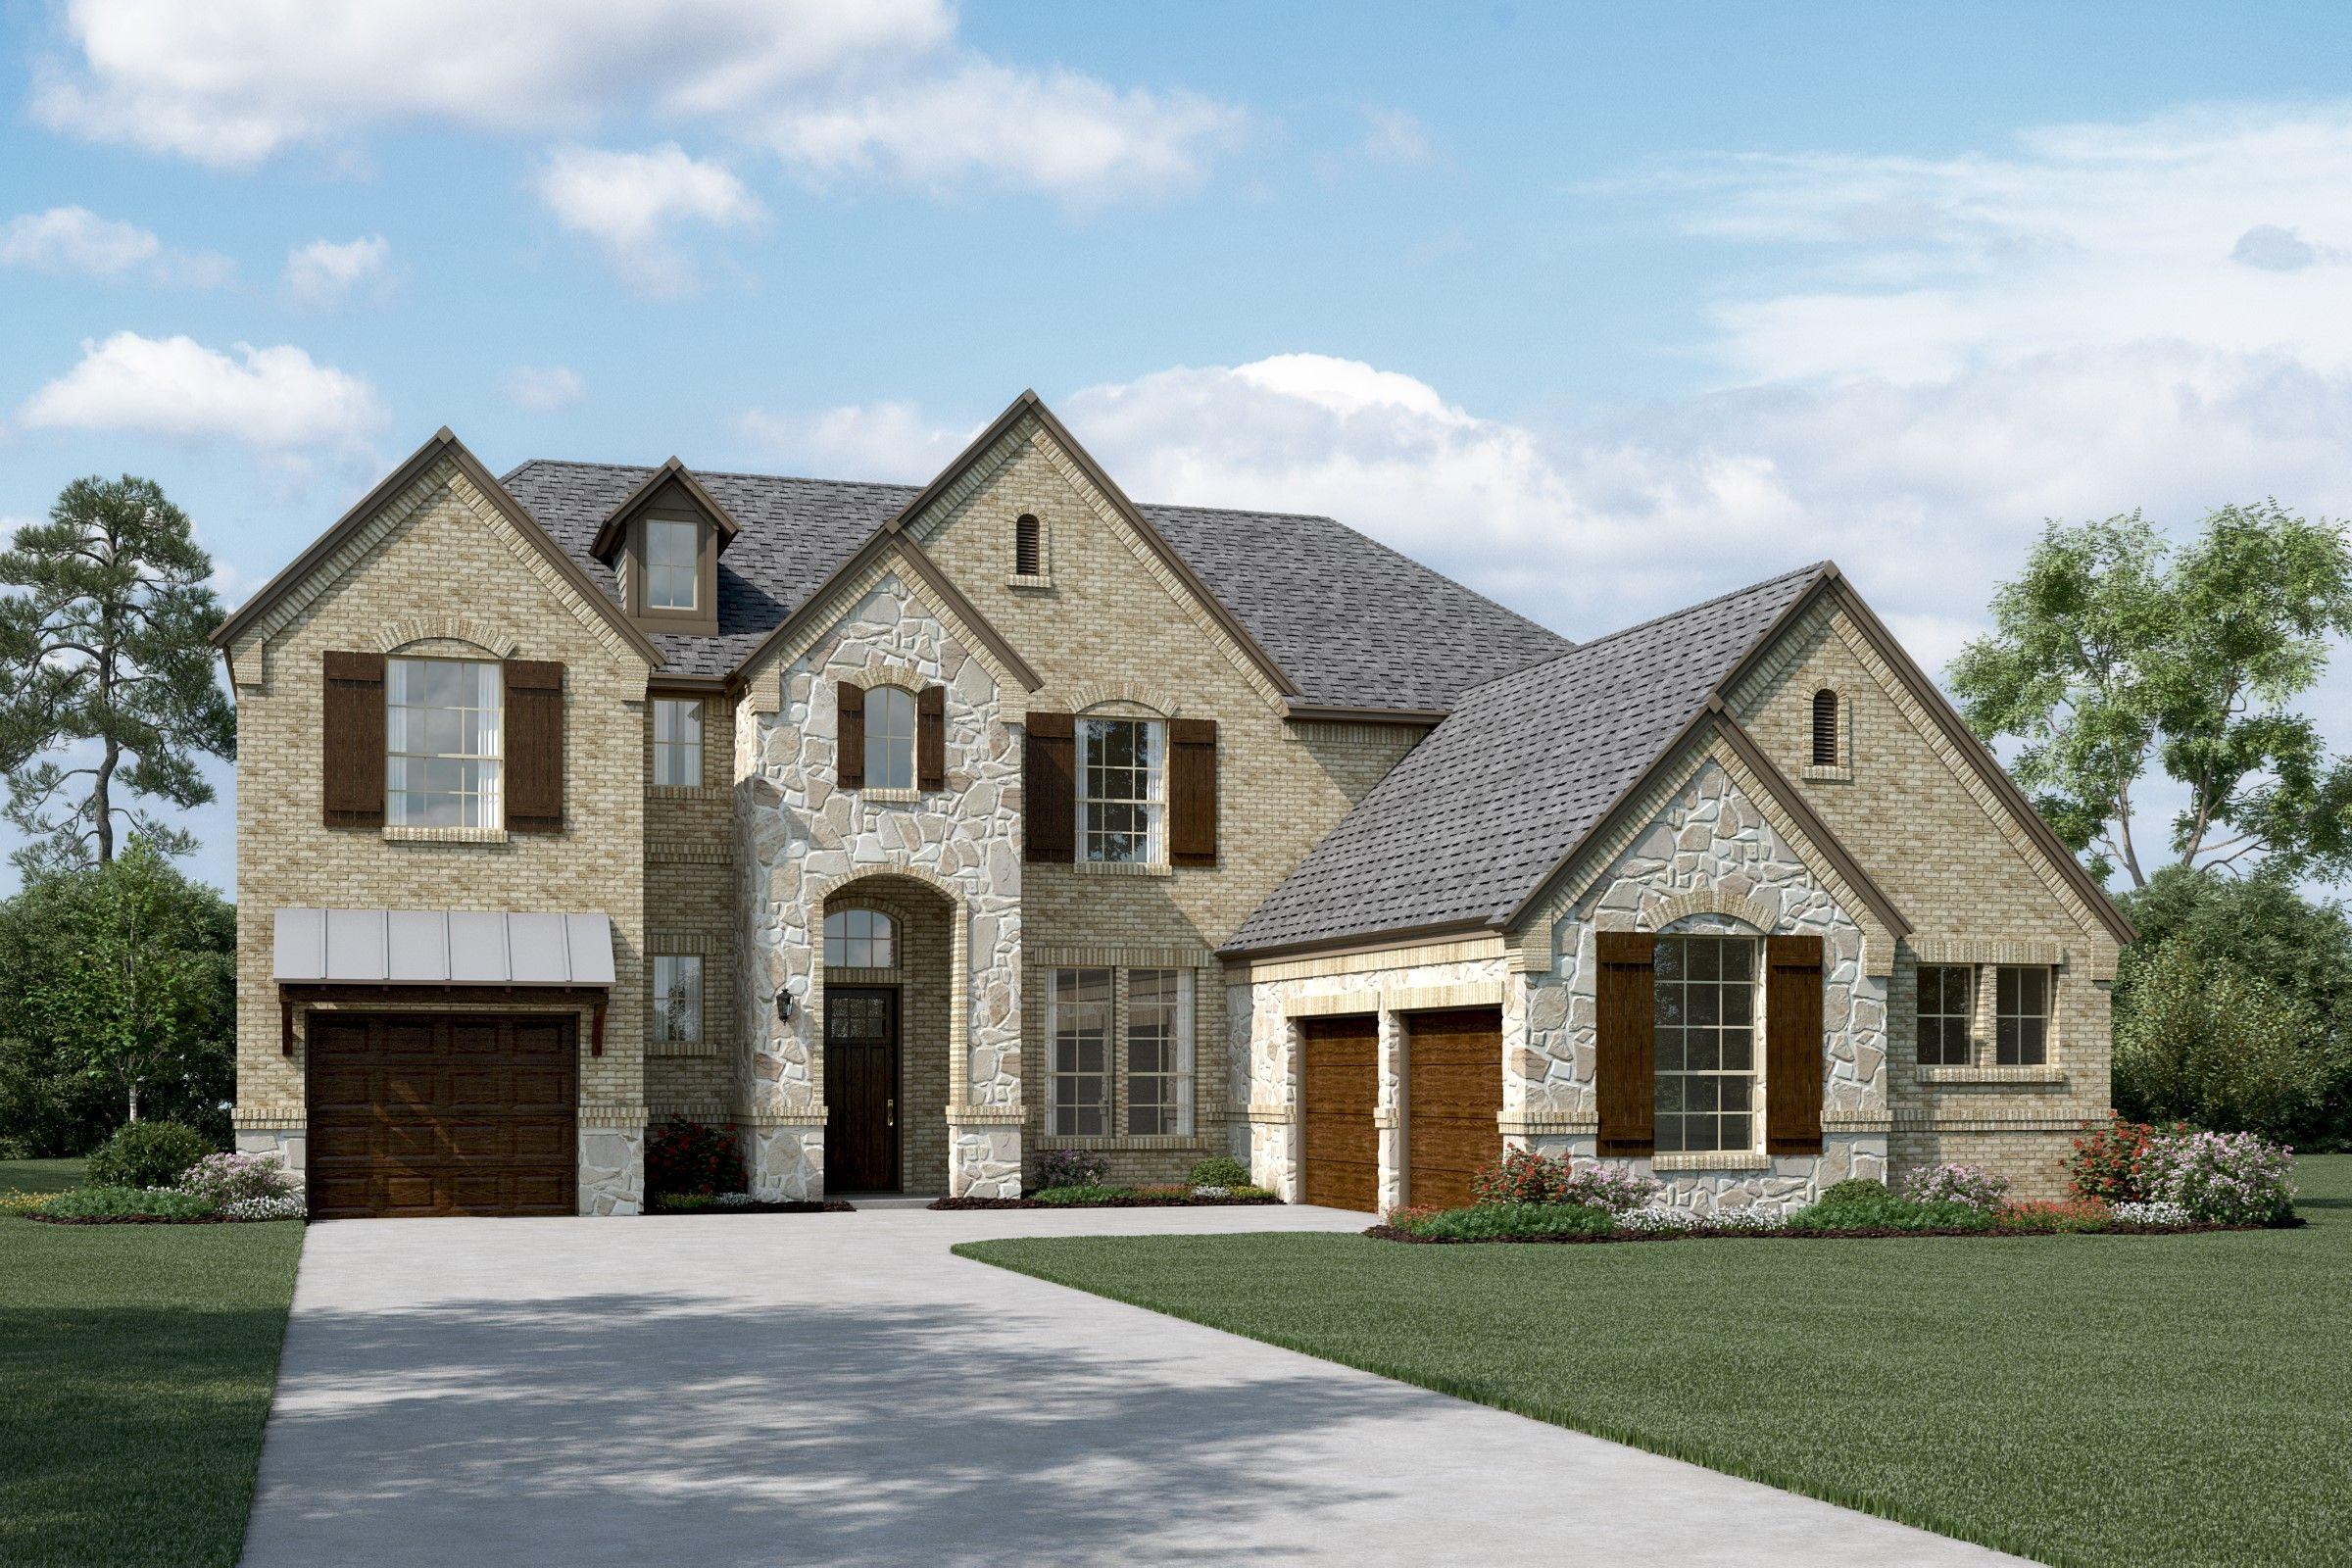 Single Family for Active at Bluff Creek Estates - Weston - Villas 828 Anderetti Drive Murphy, Texas 75094 United States